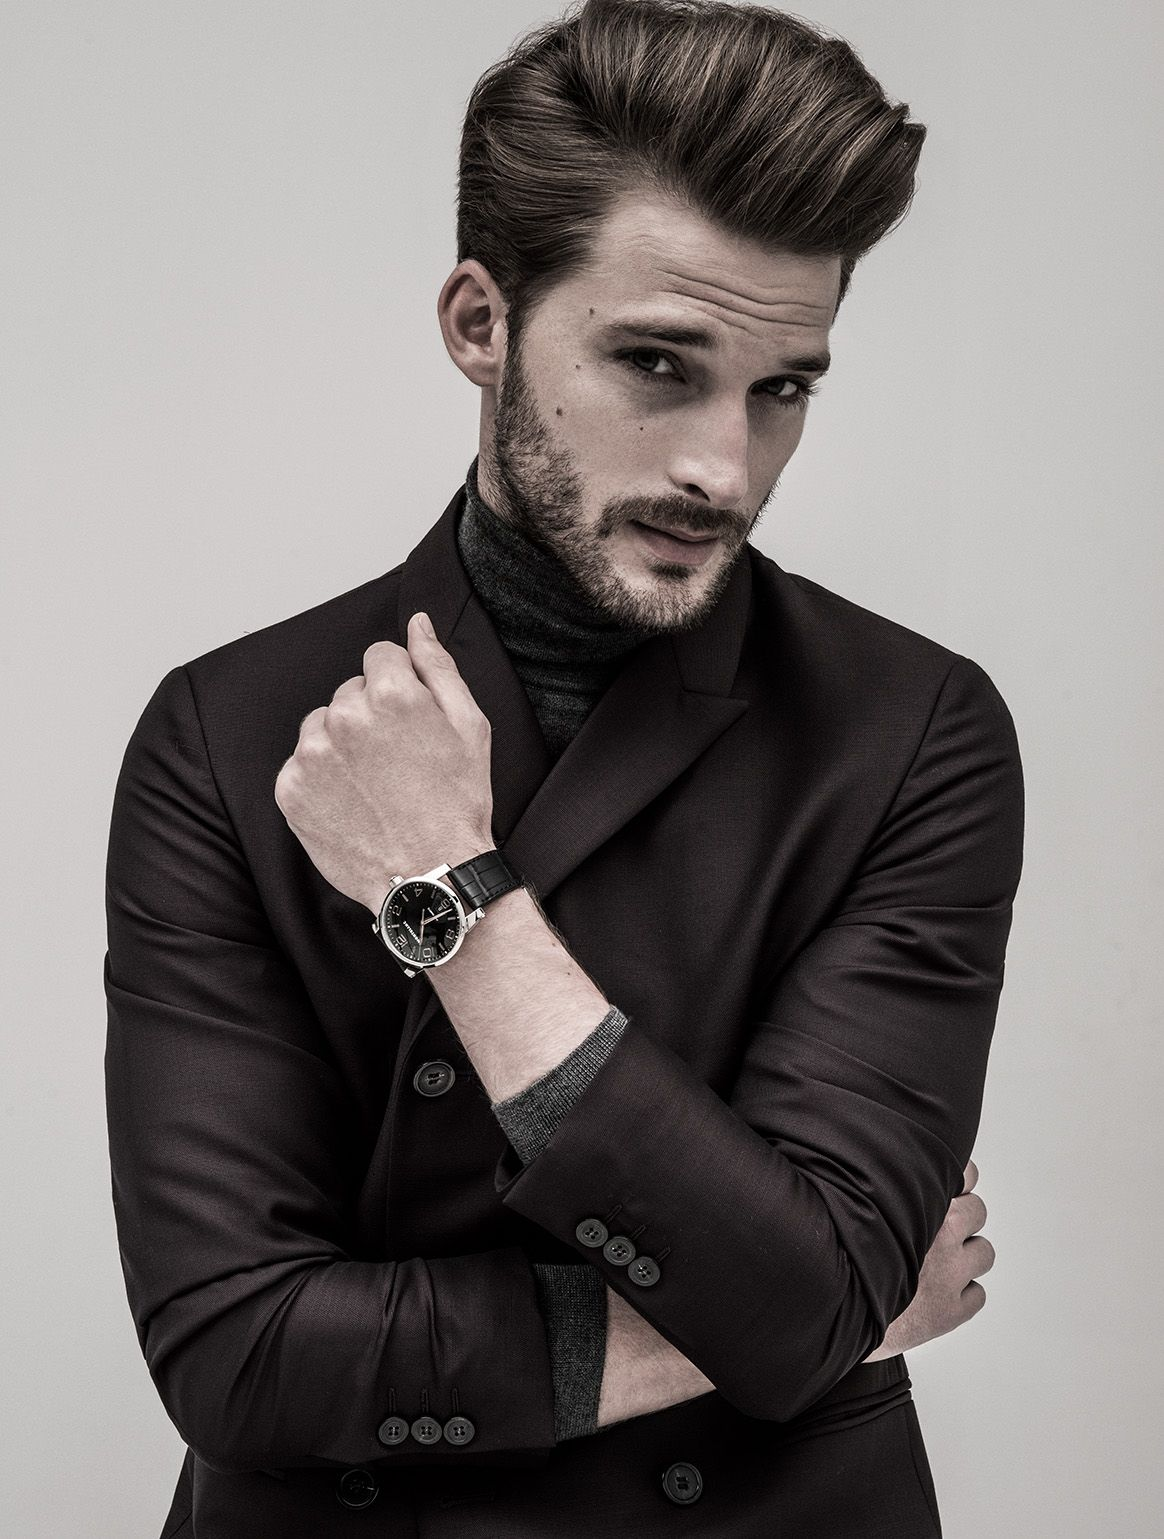 Unique Looking Male Models: 10 Of The Worlds Most Interesting